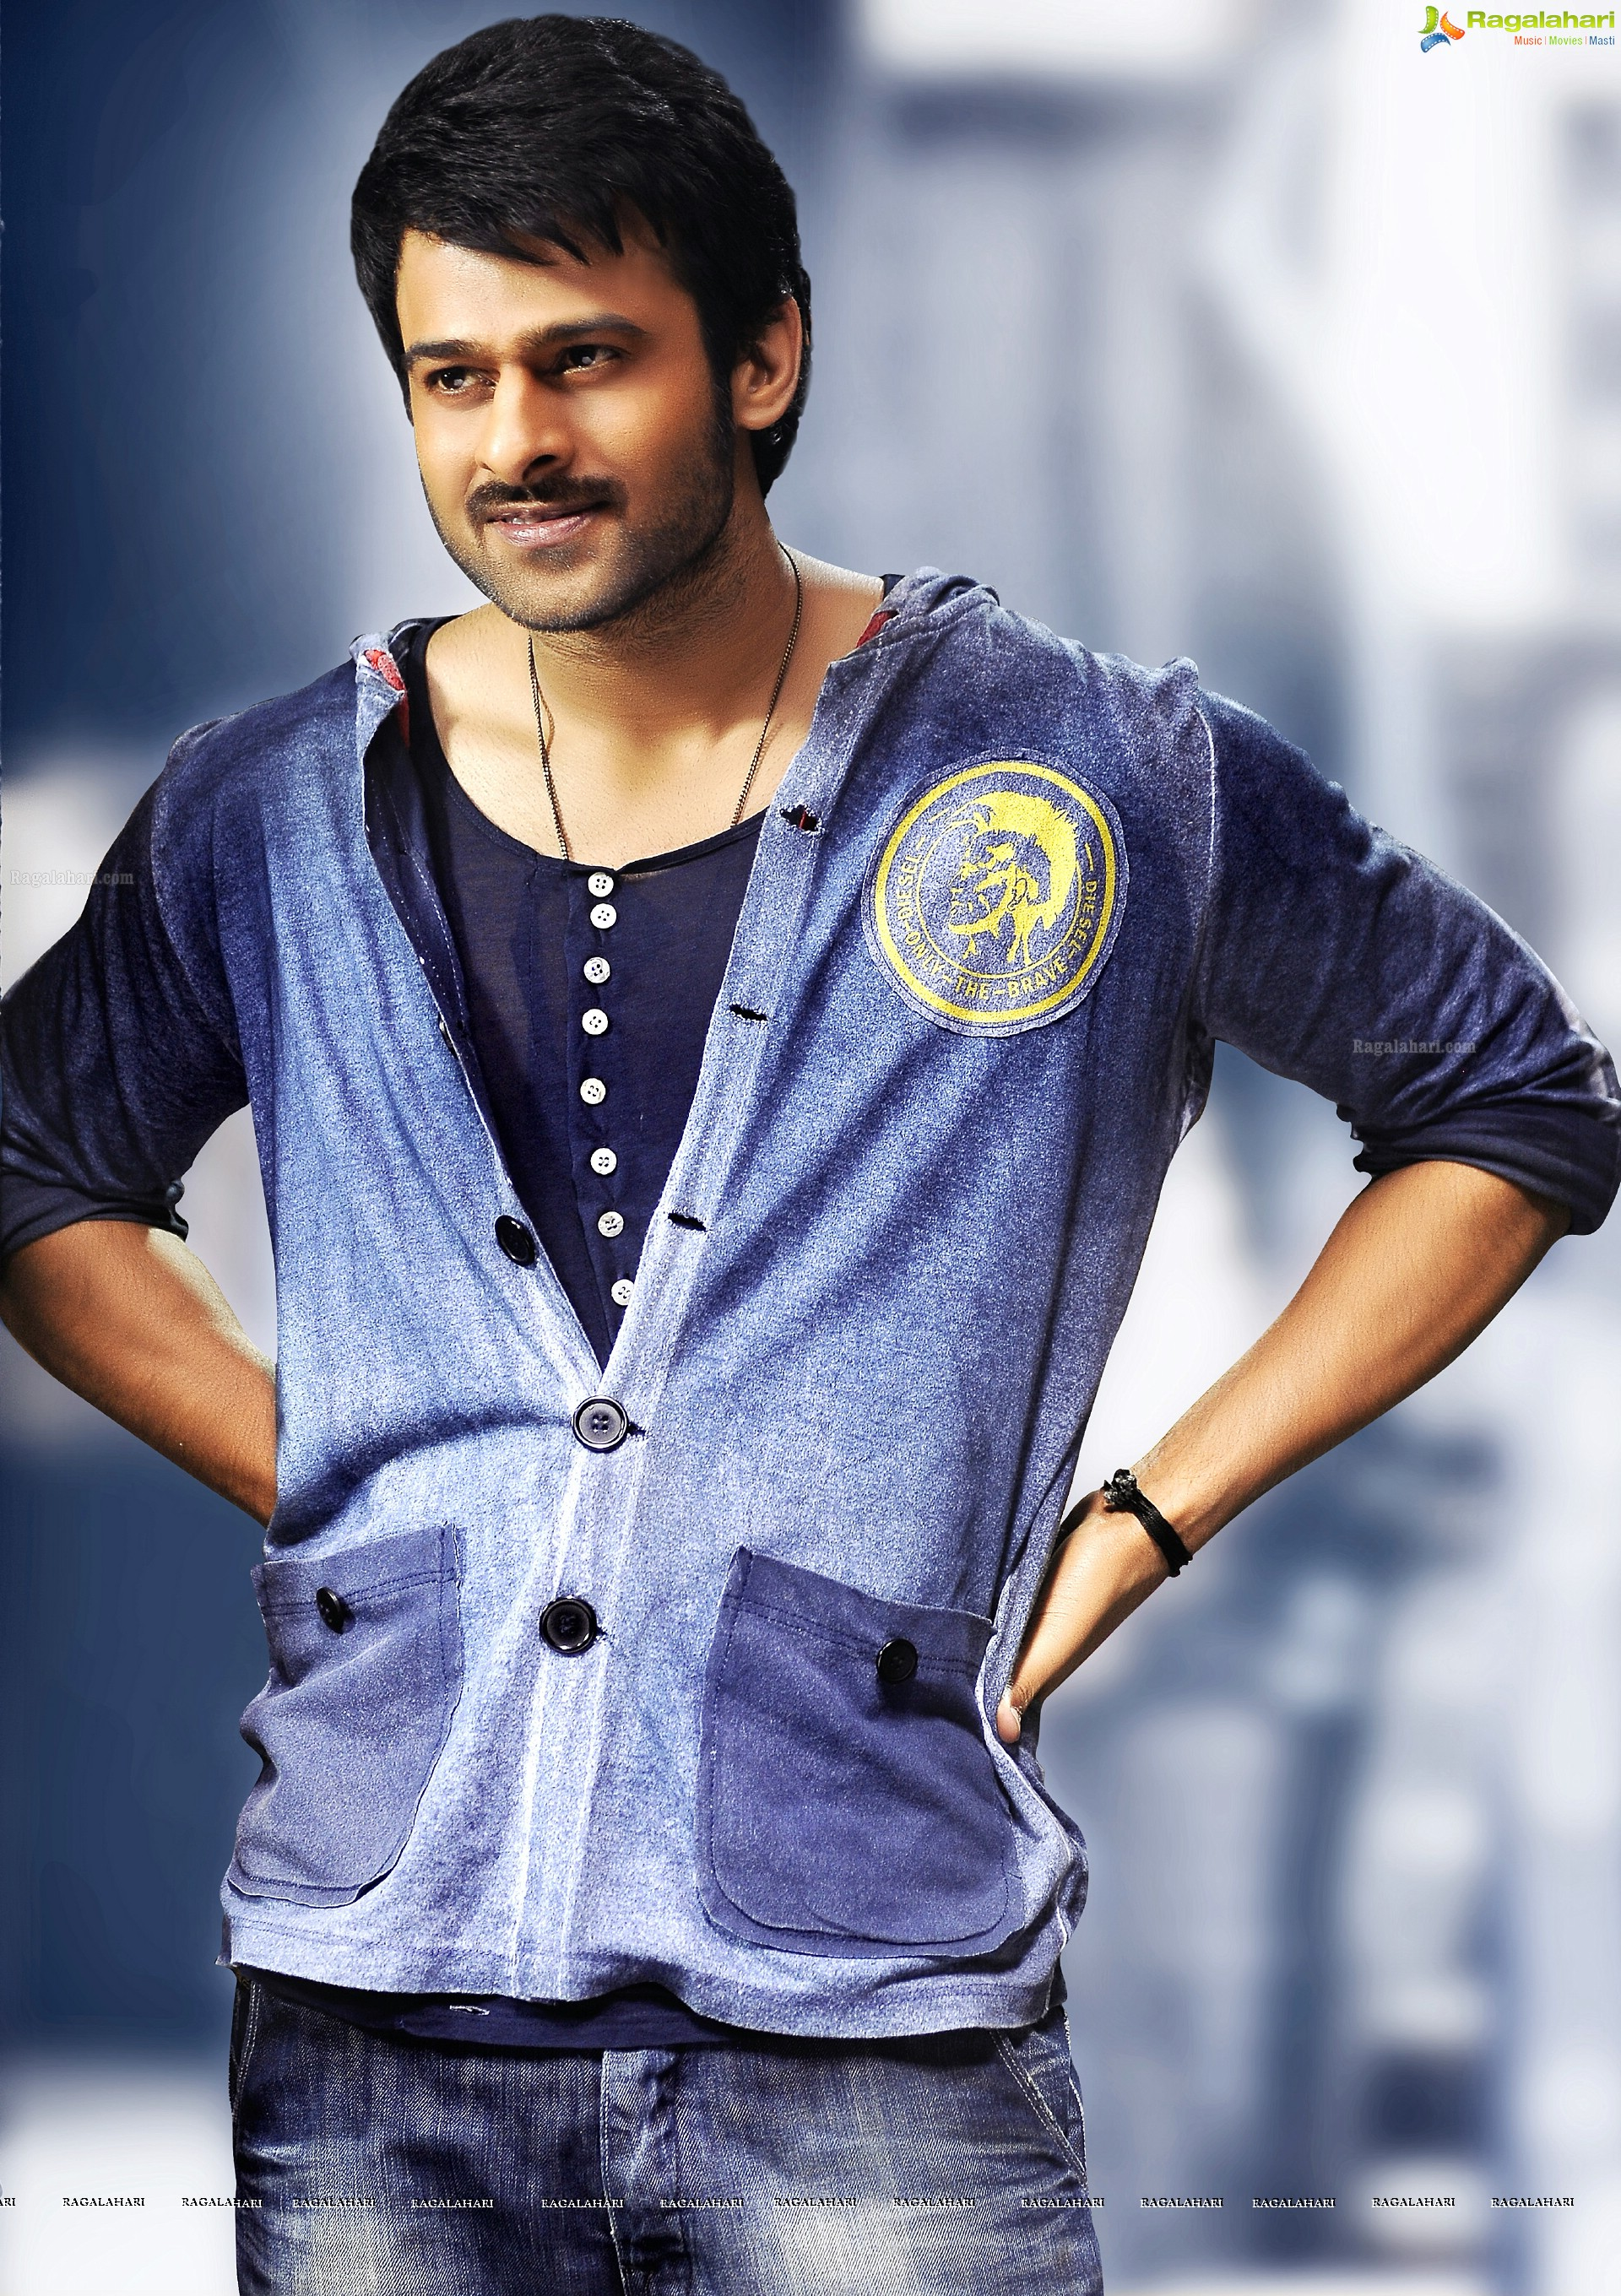 prabhas (hd) image 1002 | latest bollywood actor wallpapers,telugu